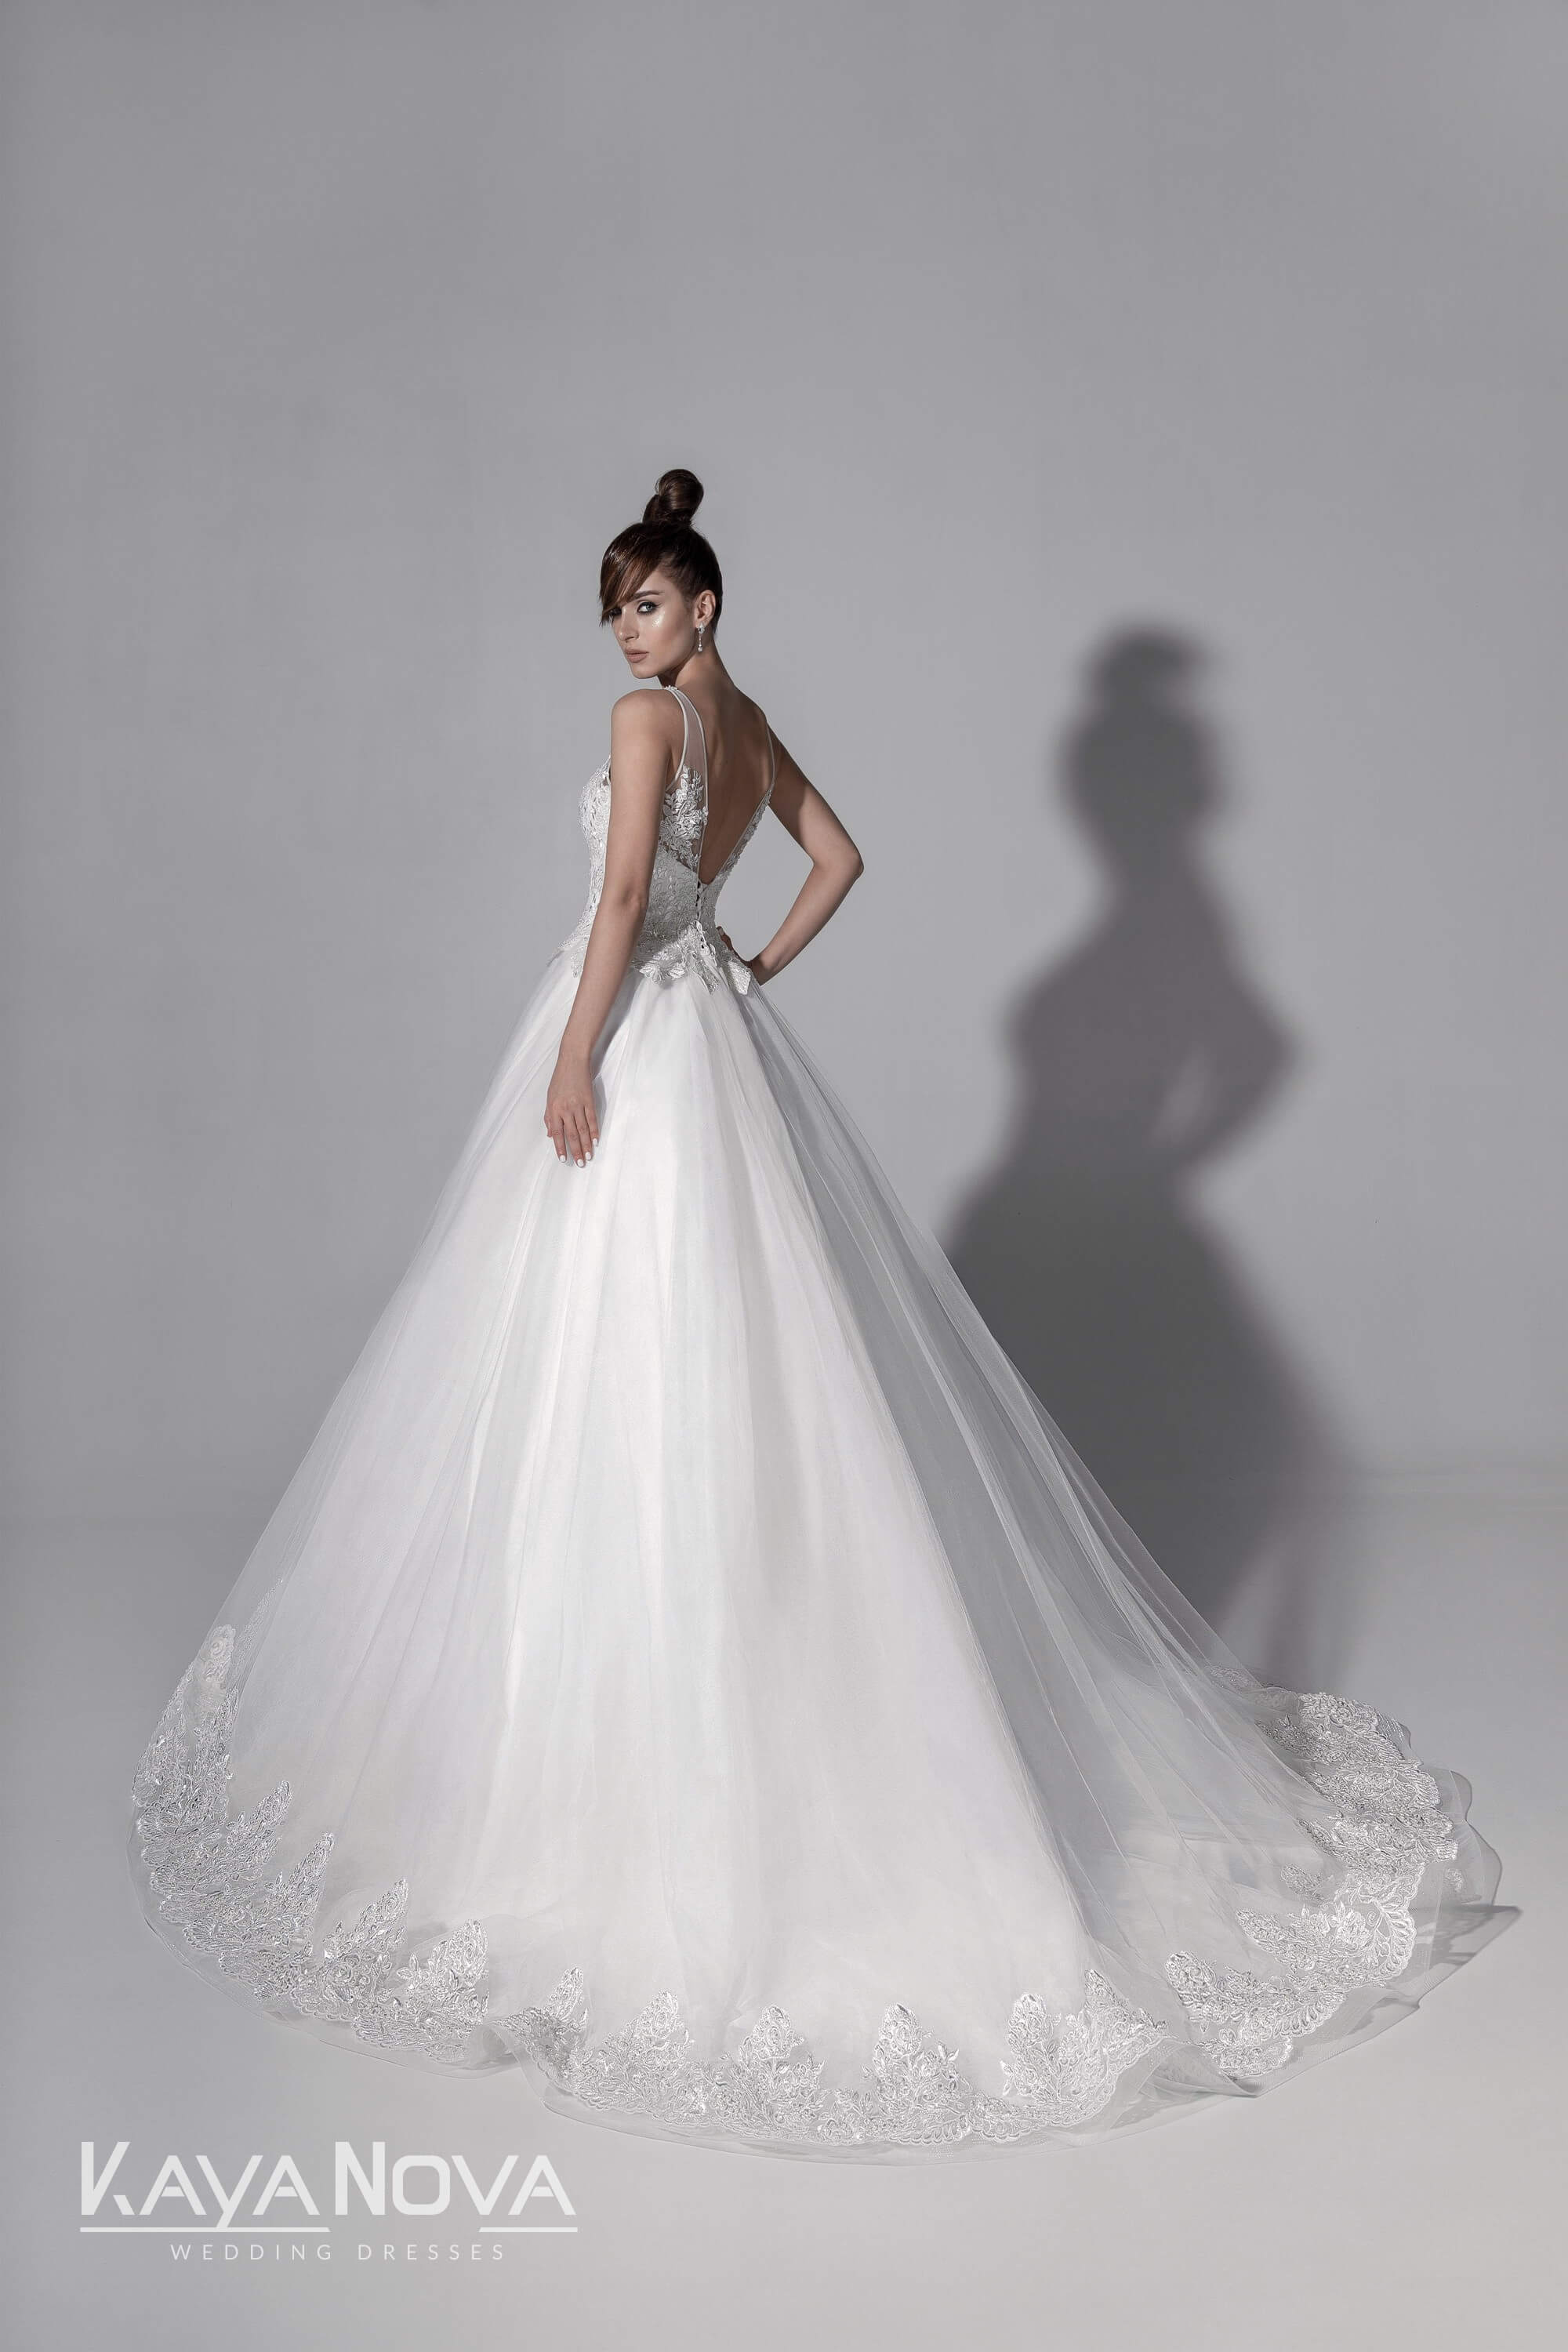 https://kayawedding.com/images/stories/virtuemart/product/Ulyana39.jpg